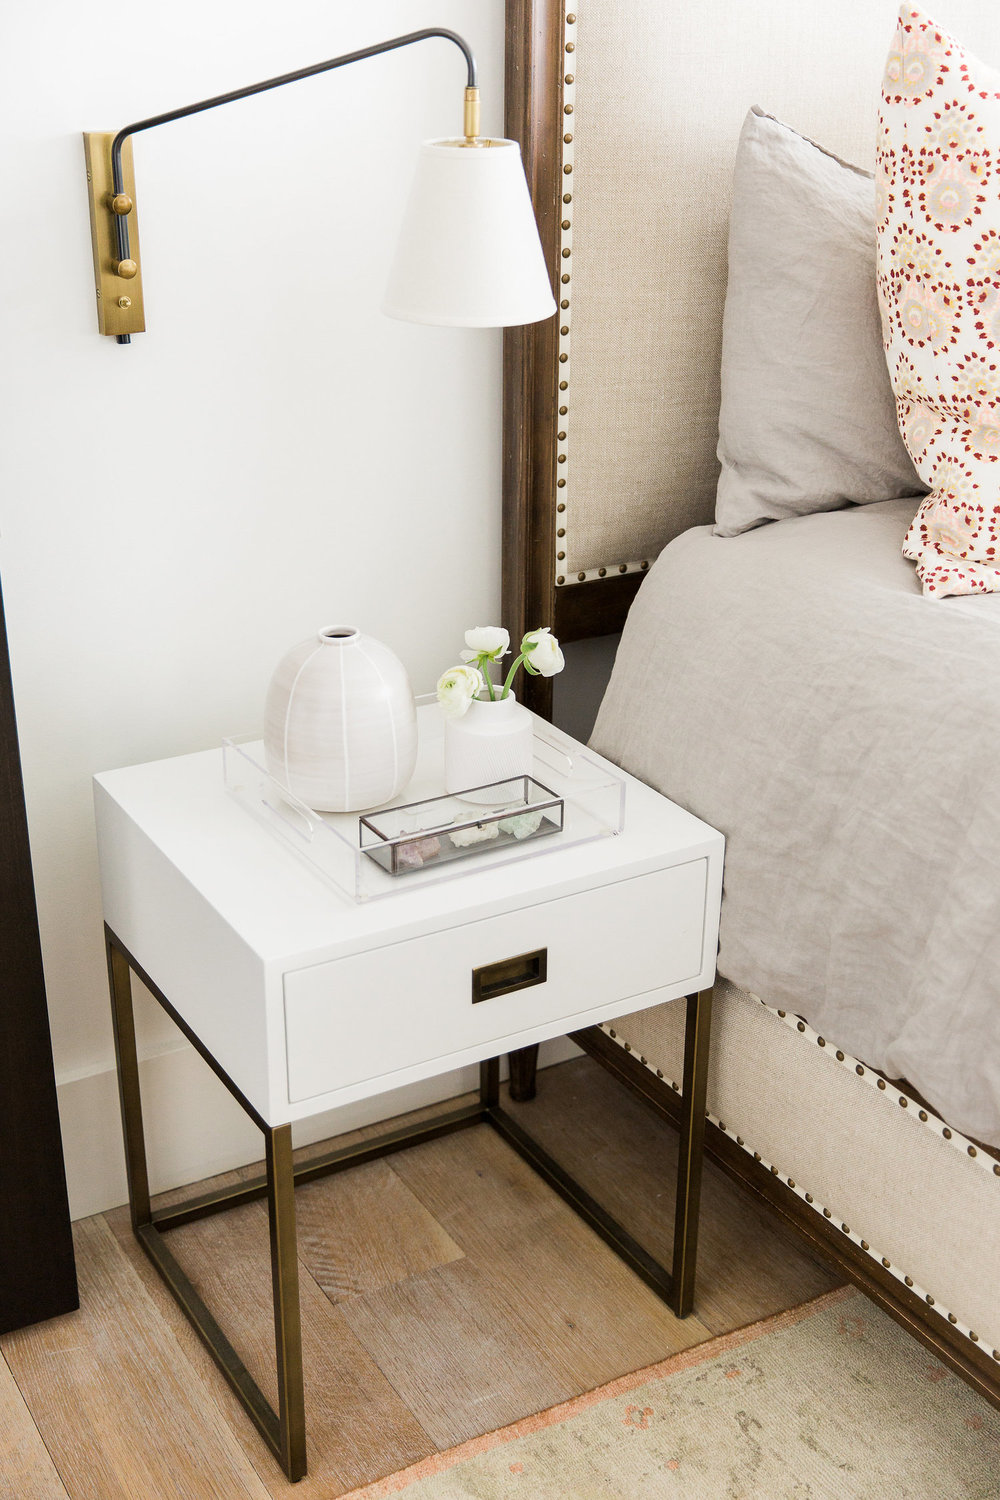 Sconce+and+Bedside+Details+||+Studio+McGee.jpg